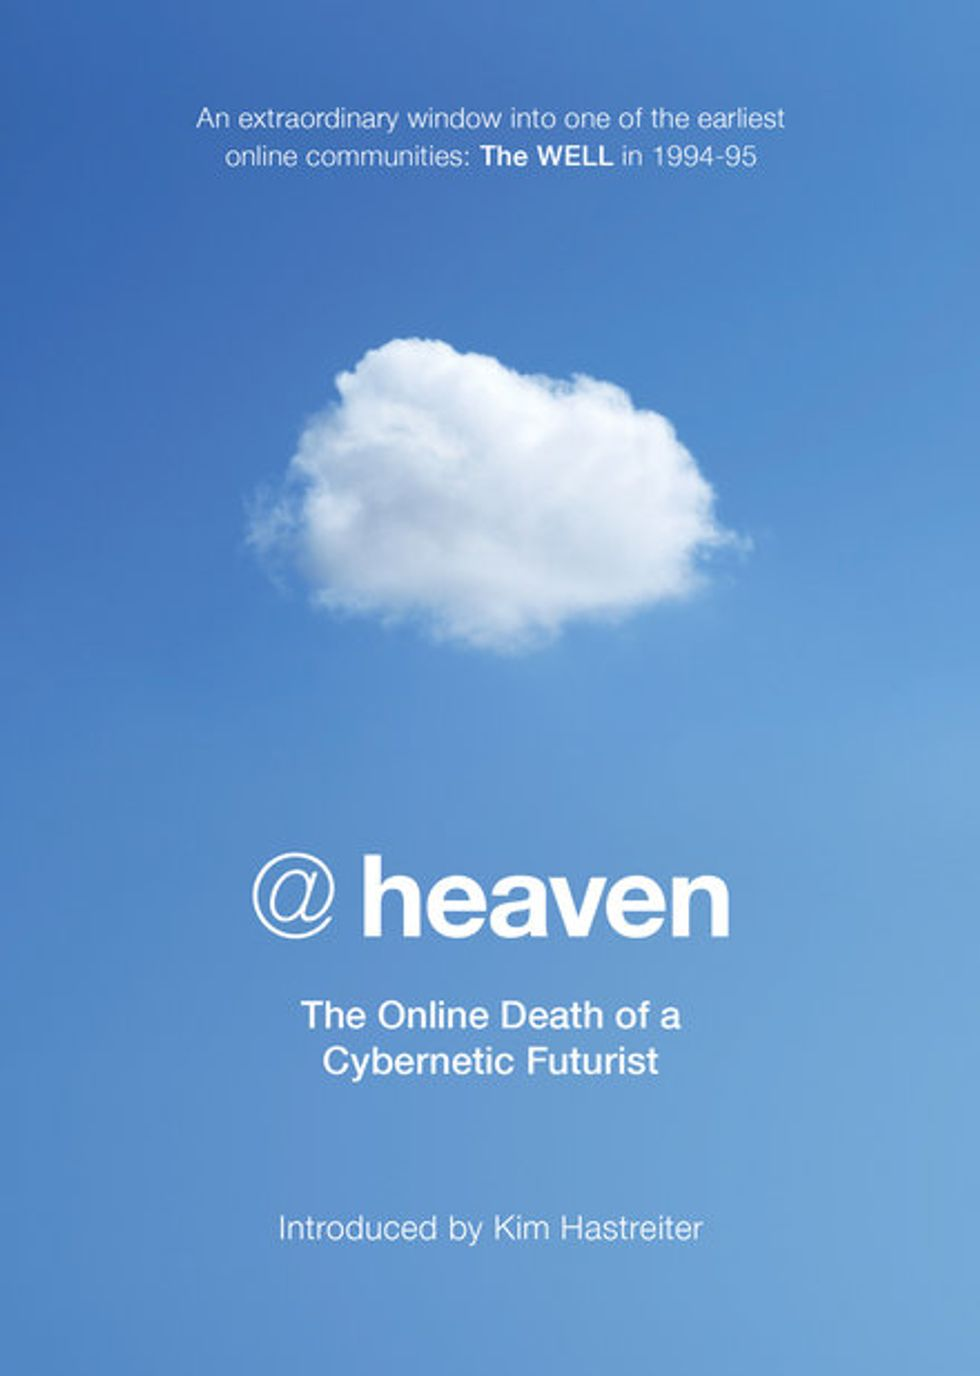 New Book @heaven Explores the Internet's Earliest Social Network and the Incredible Story That Unfolded Within It